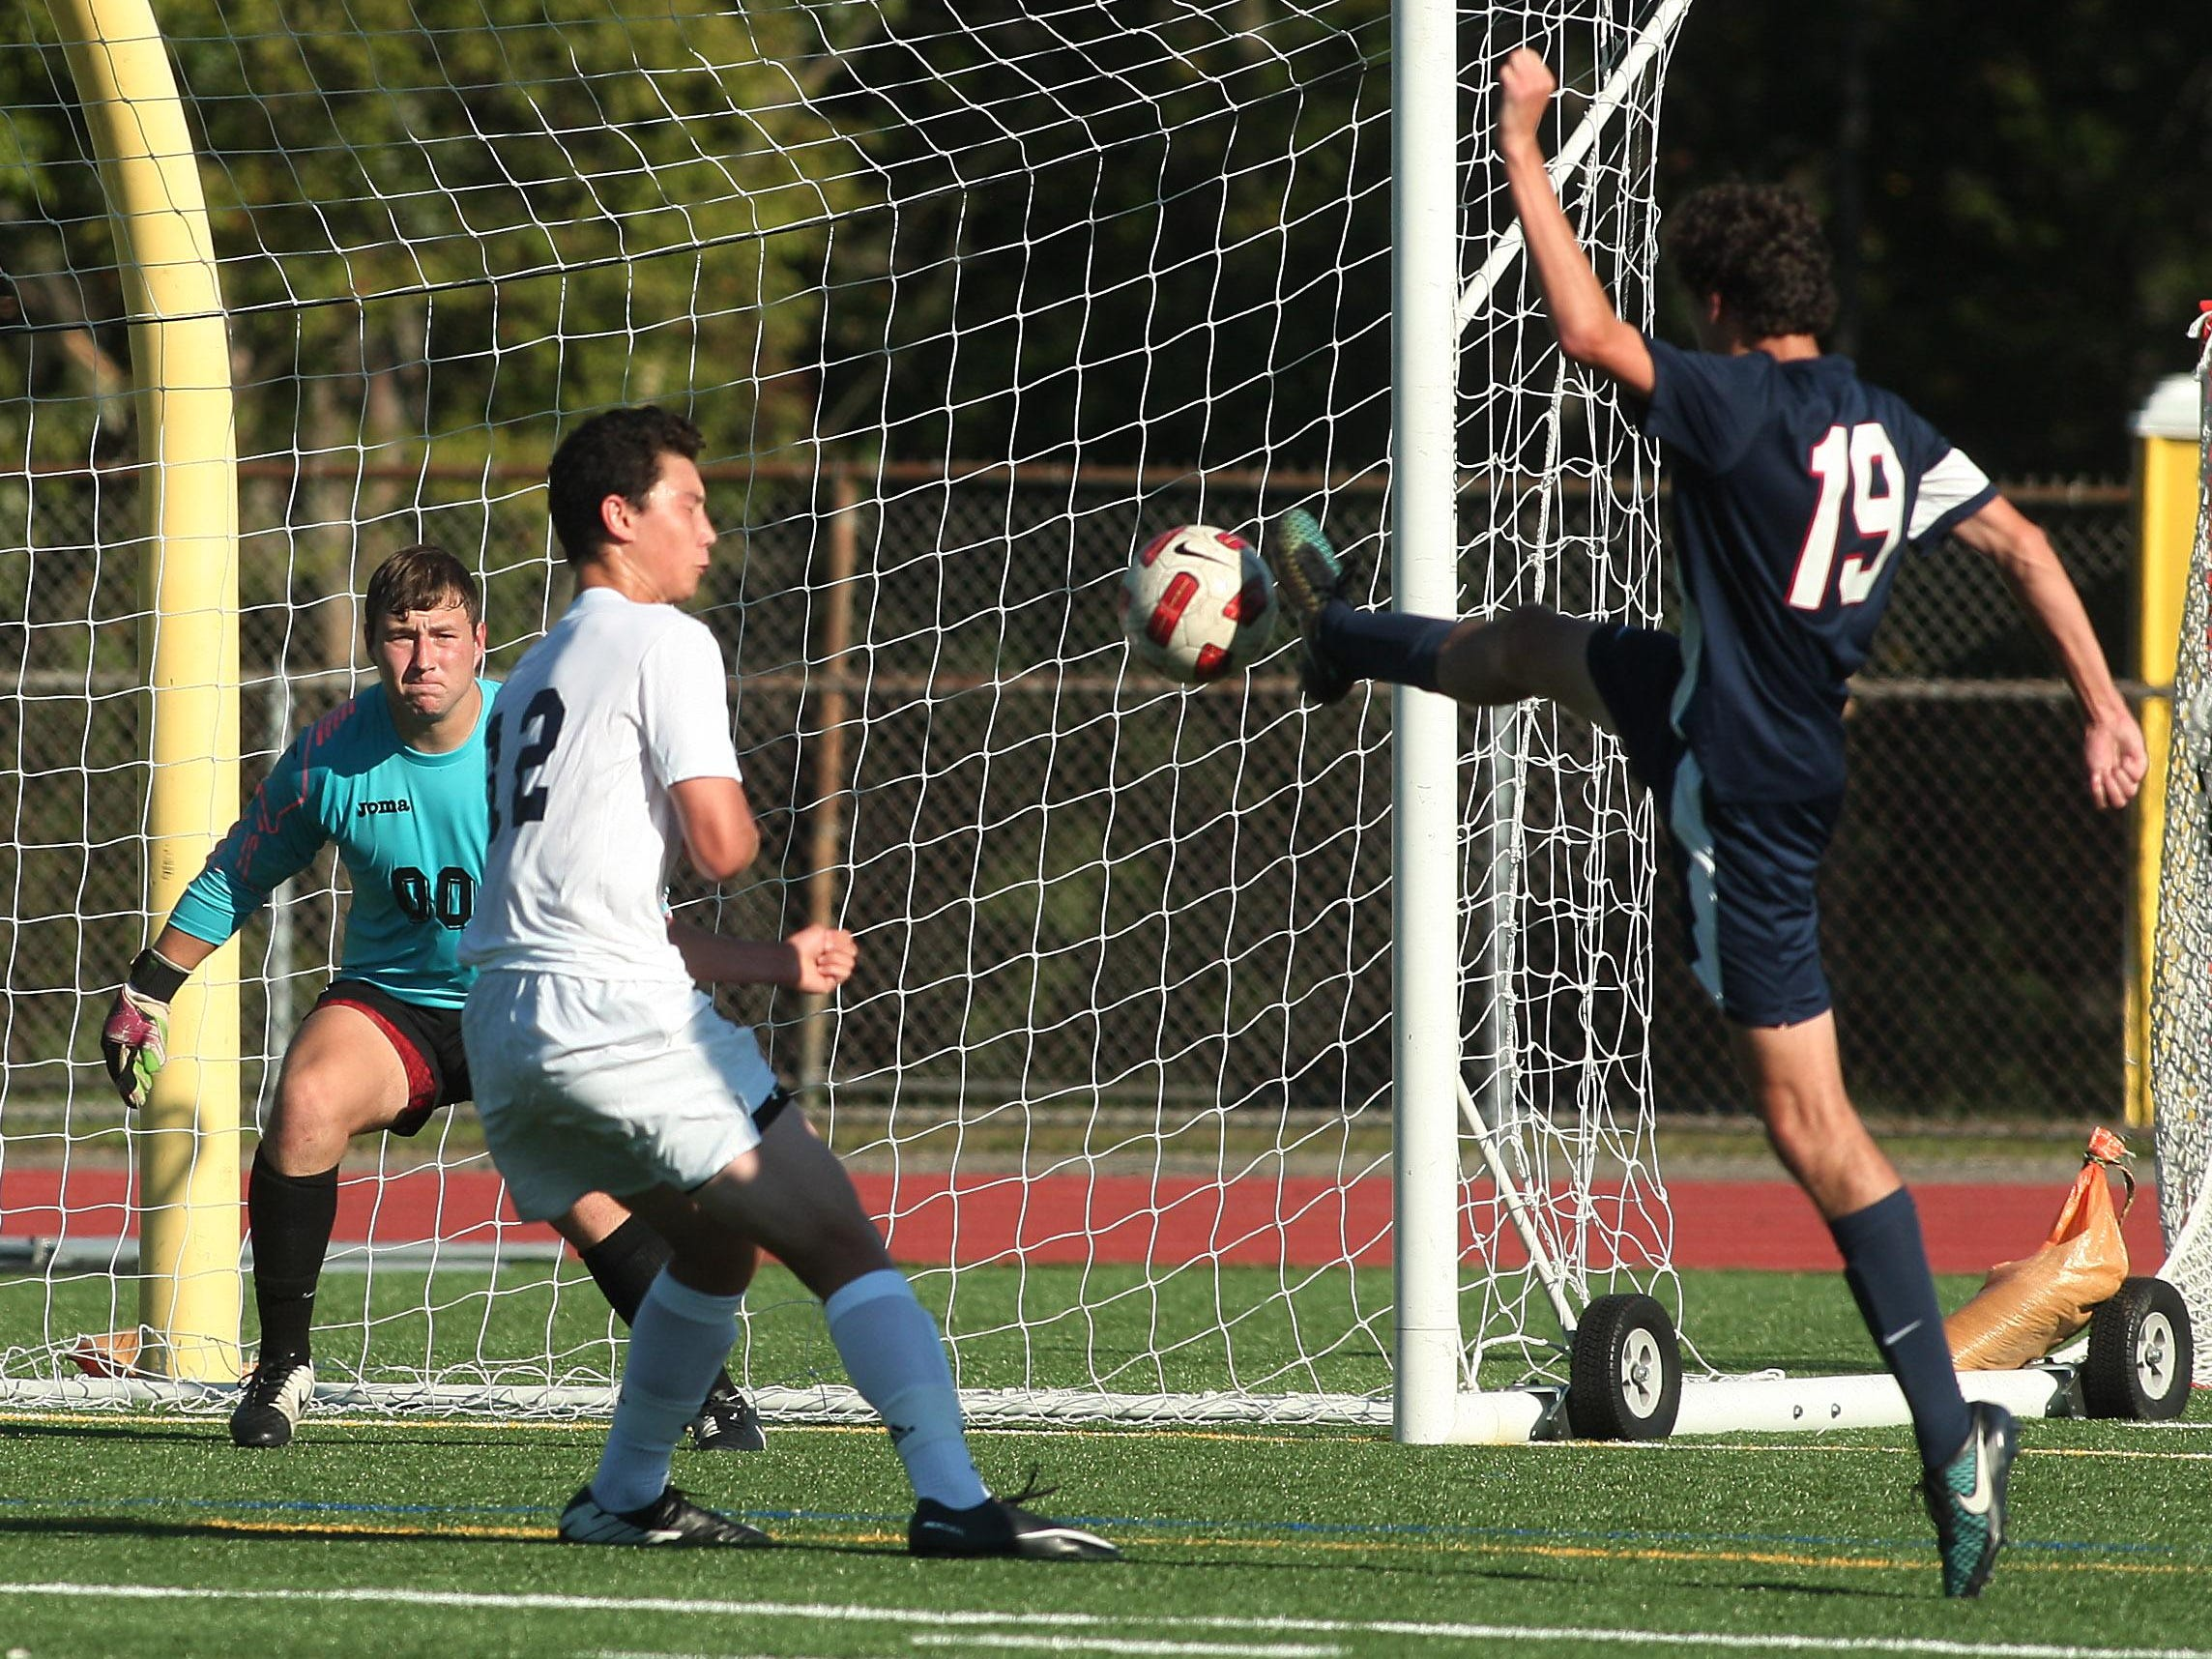 Mendham's Thomas Nobes tries for a goal but is stopped by Chatham defender Harrison Shi during Wednesday's game.